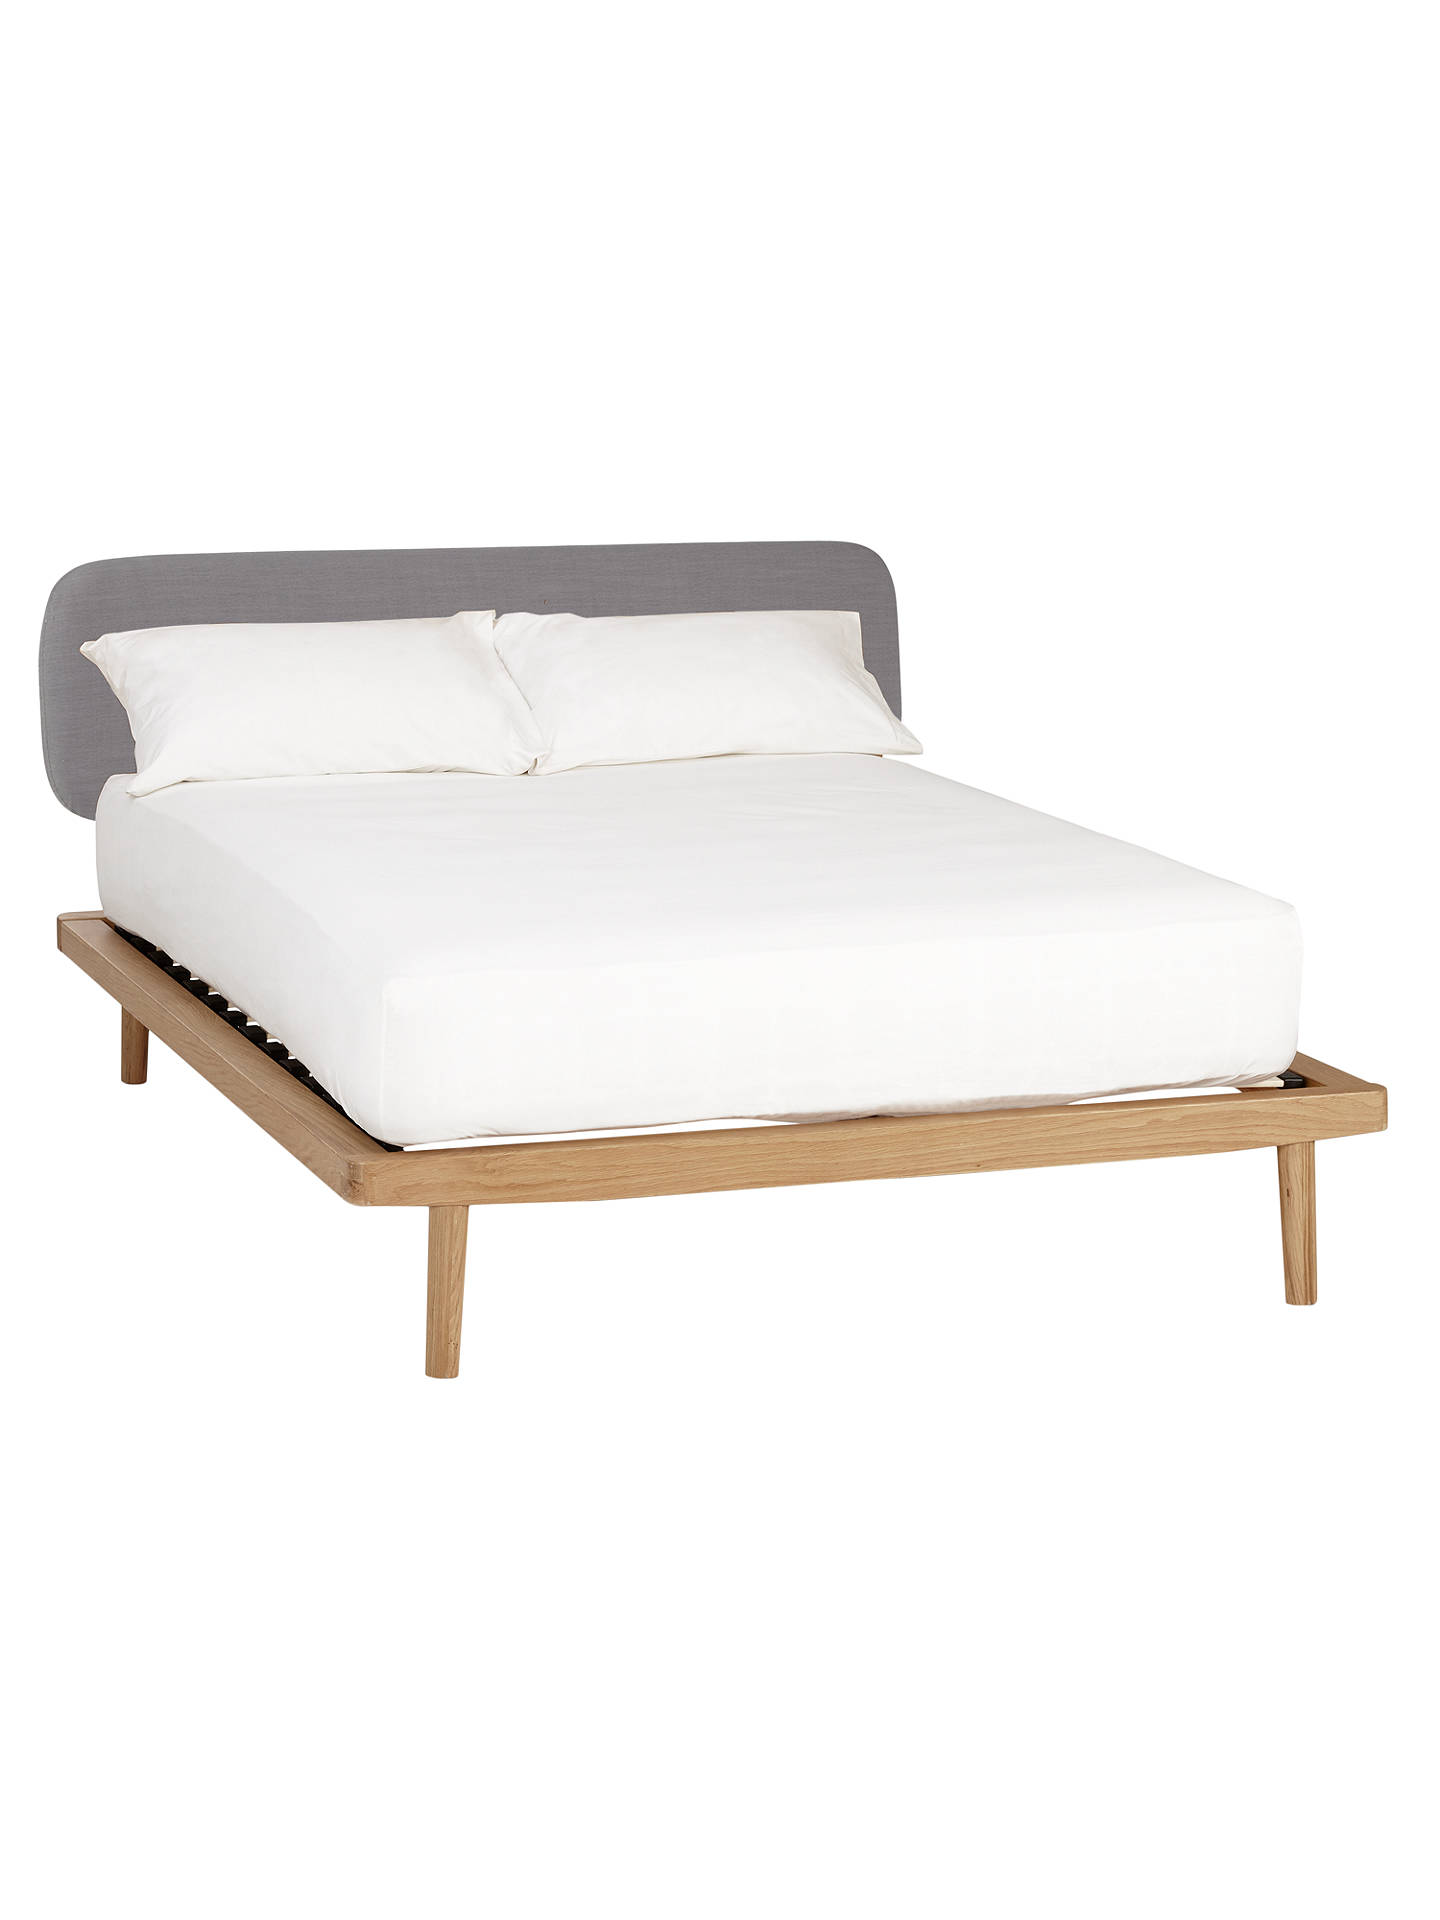 BuyHouse by John Lewis Bow Upholstered Headboard Bed Frame, King Size, Oak Online at johnlewis.com